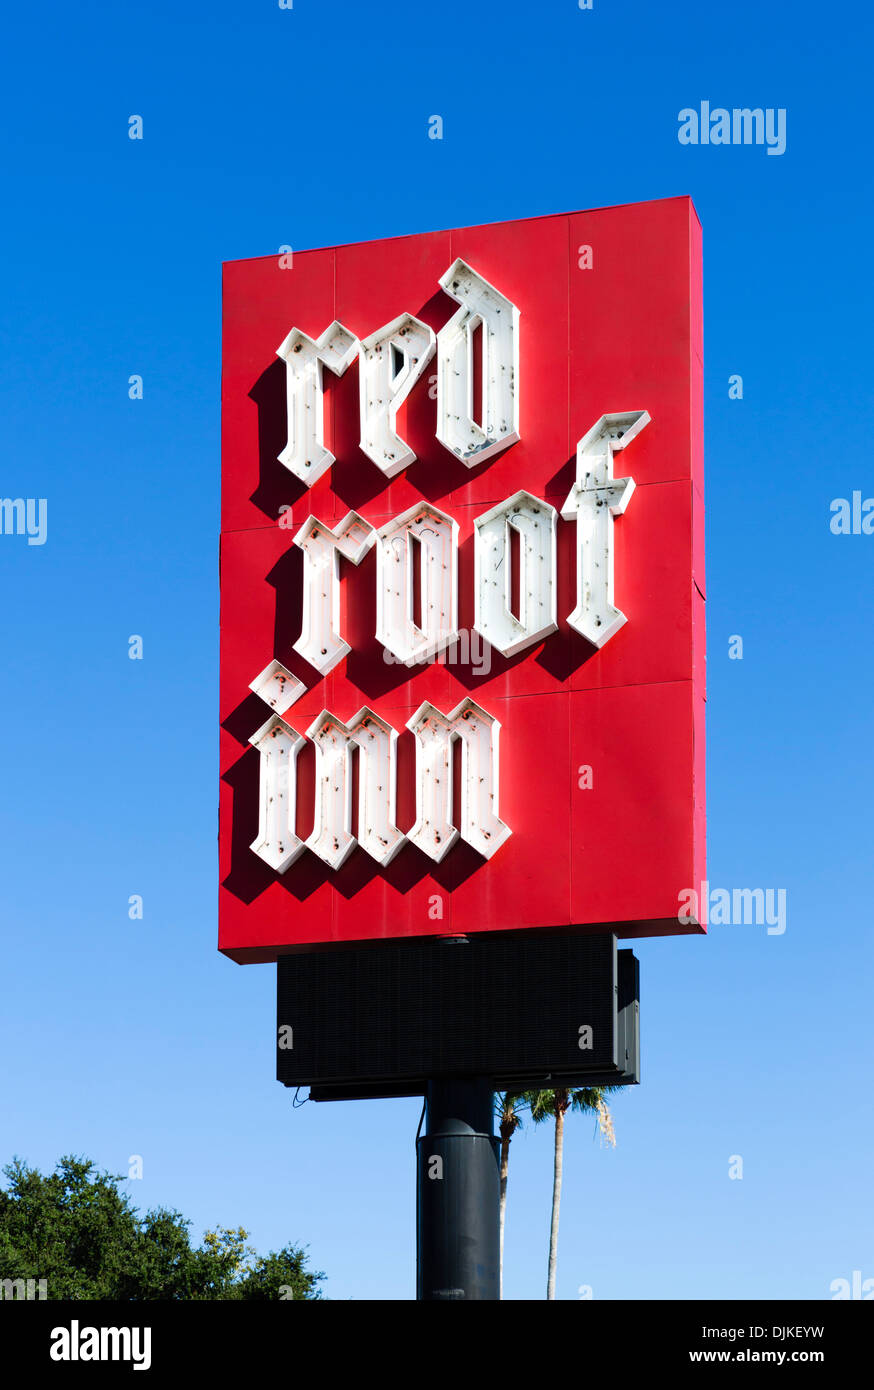 Red Roof Inn hotel sign, Central Florida, USA - Stock Image